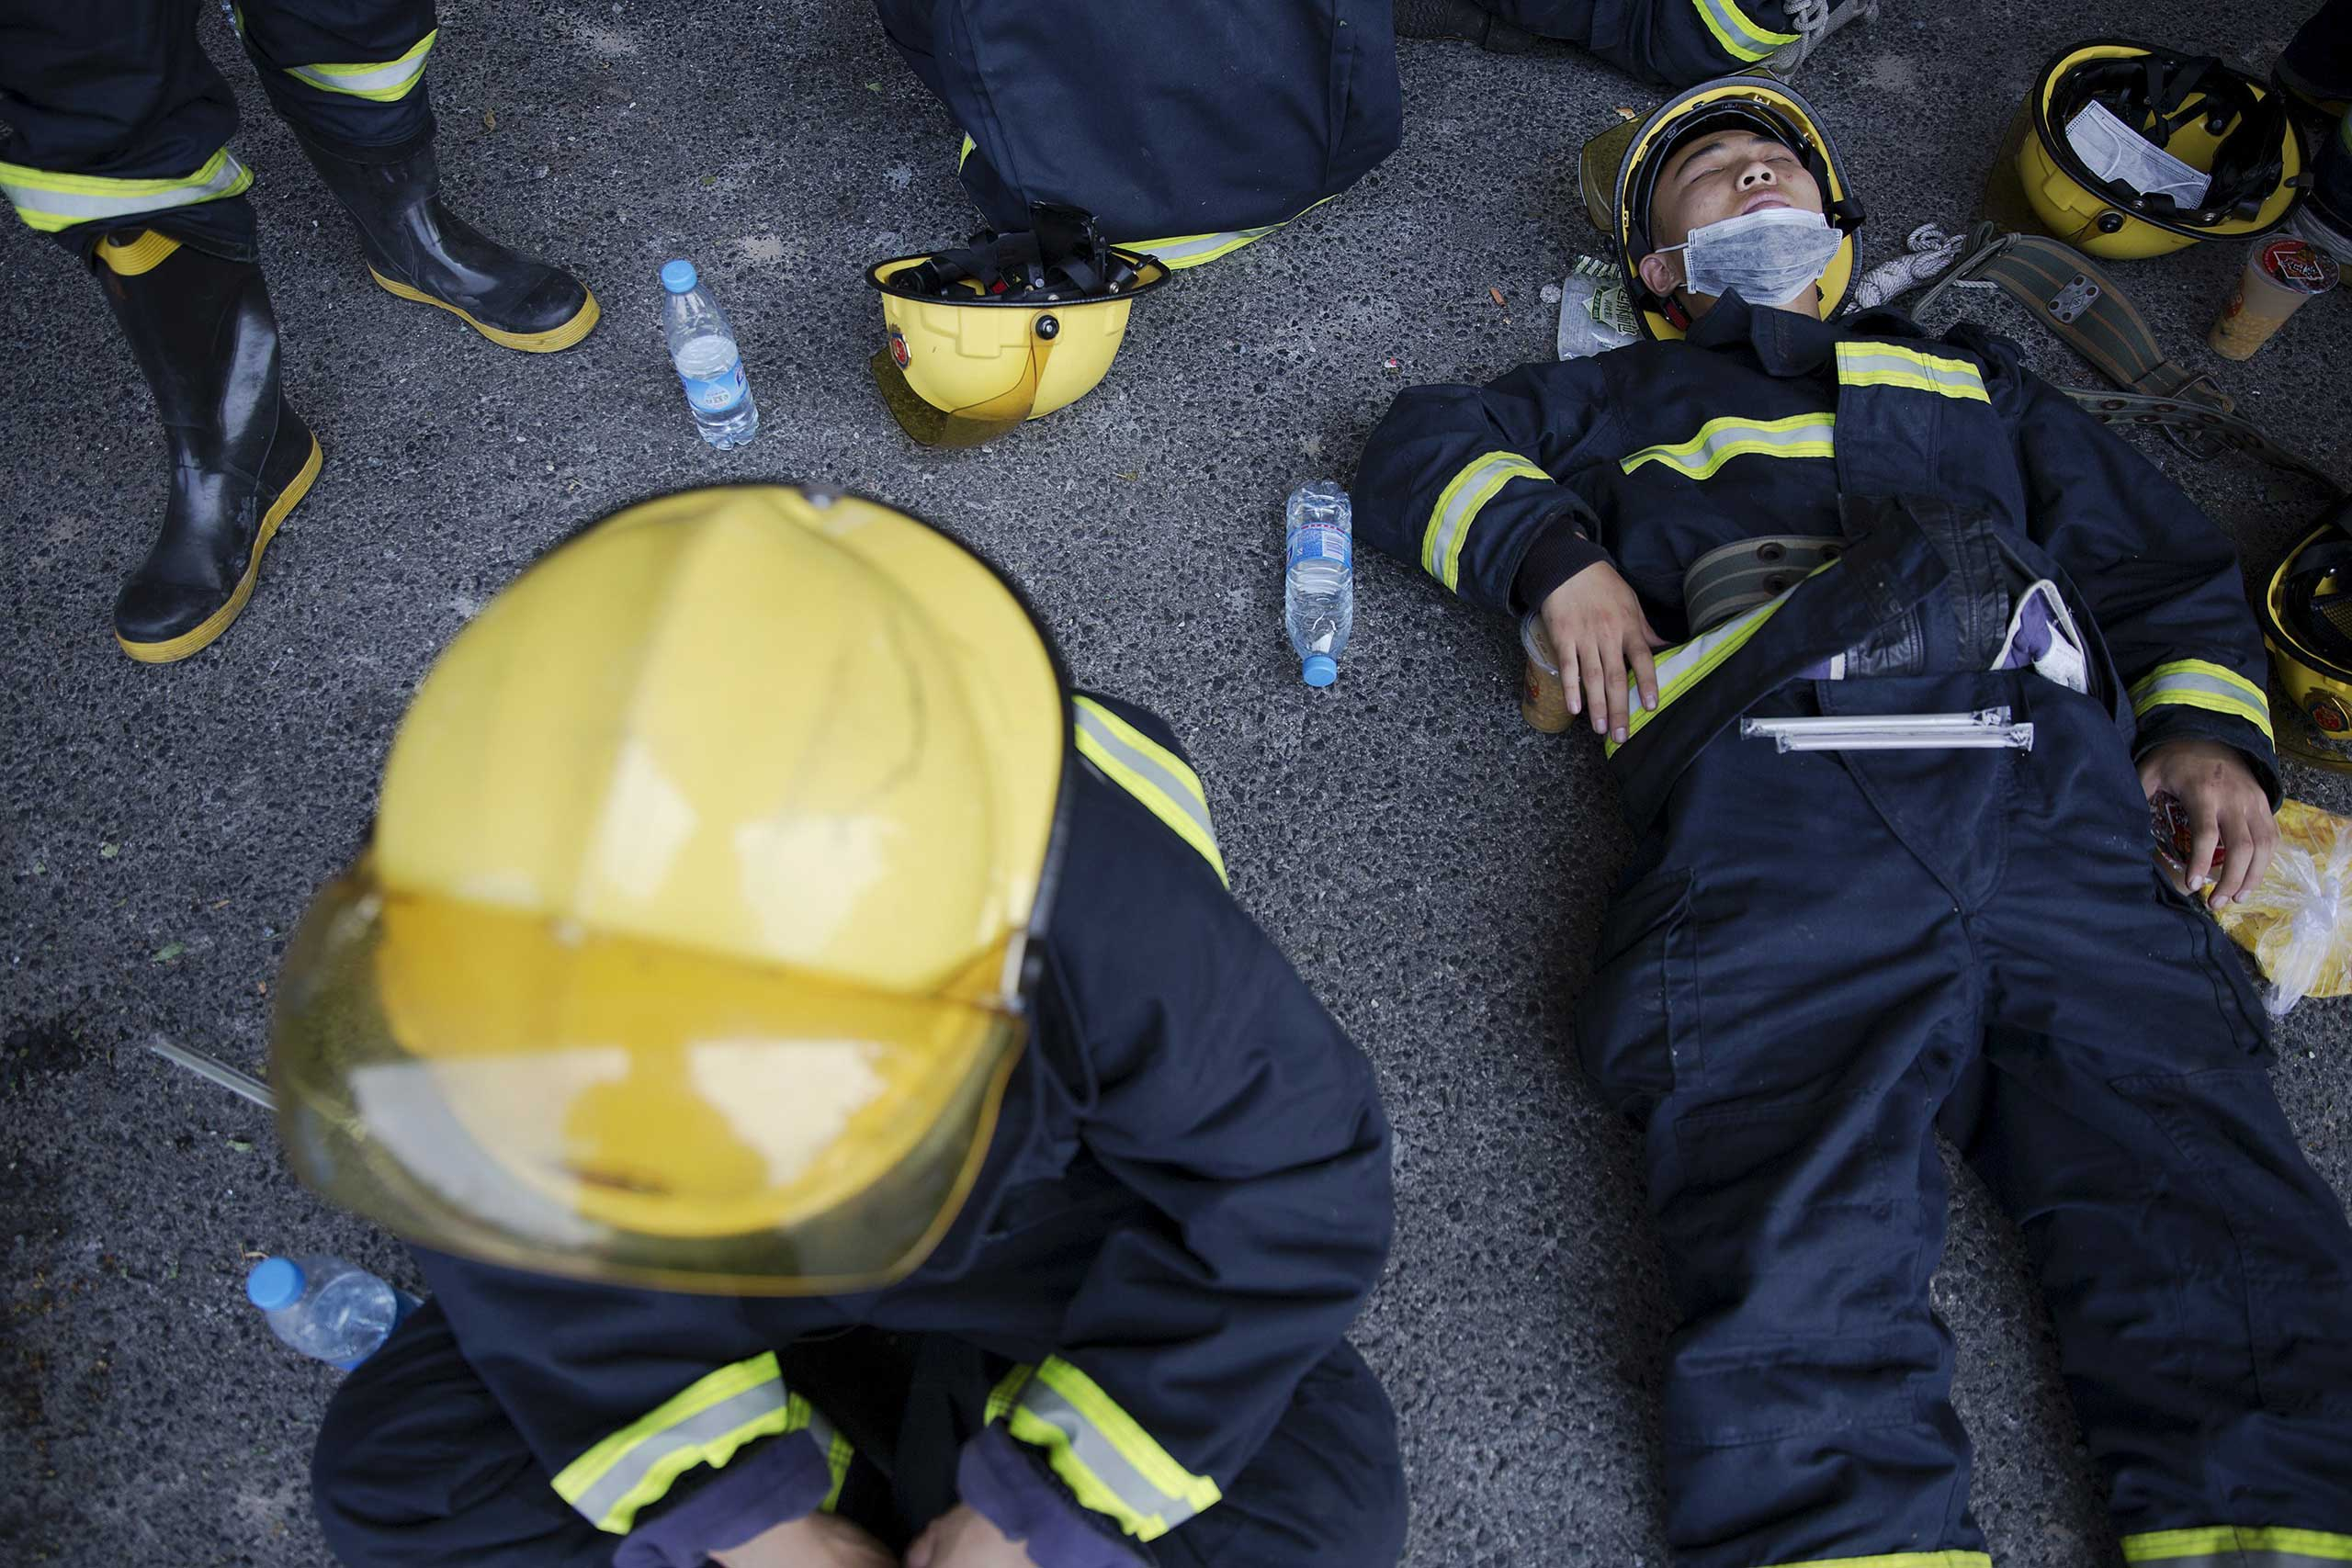 Firefighters take a break after trying to put fire down at the explosion site in Binhai new district in Tianjin, China, on Aug. 13, 2015.